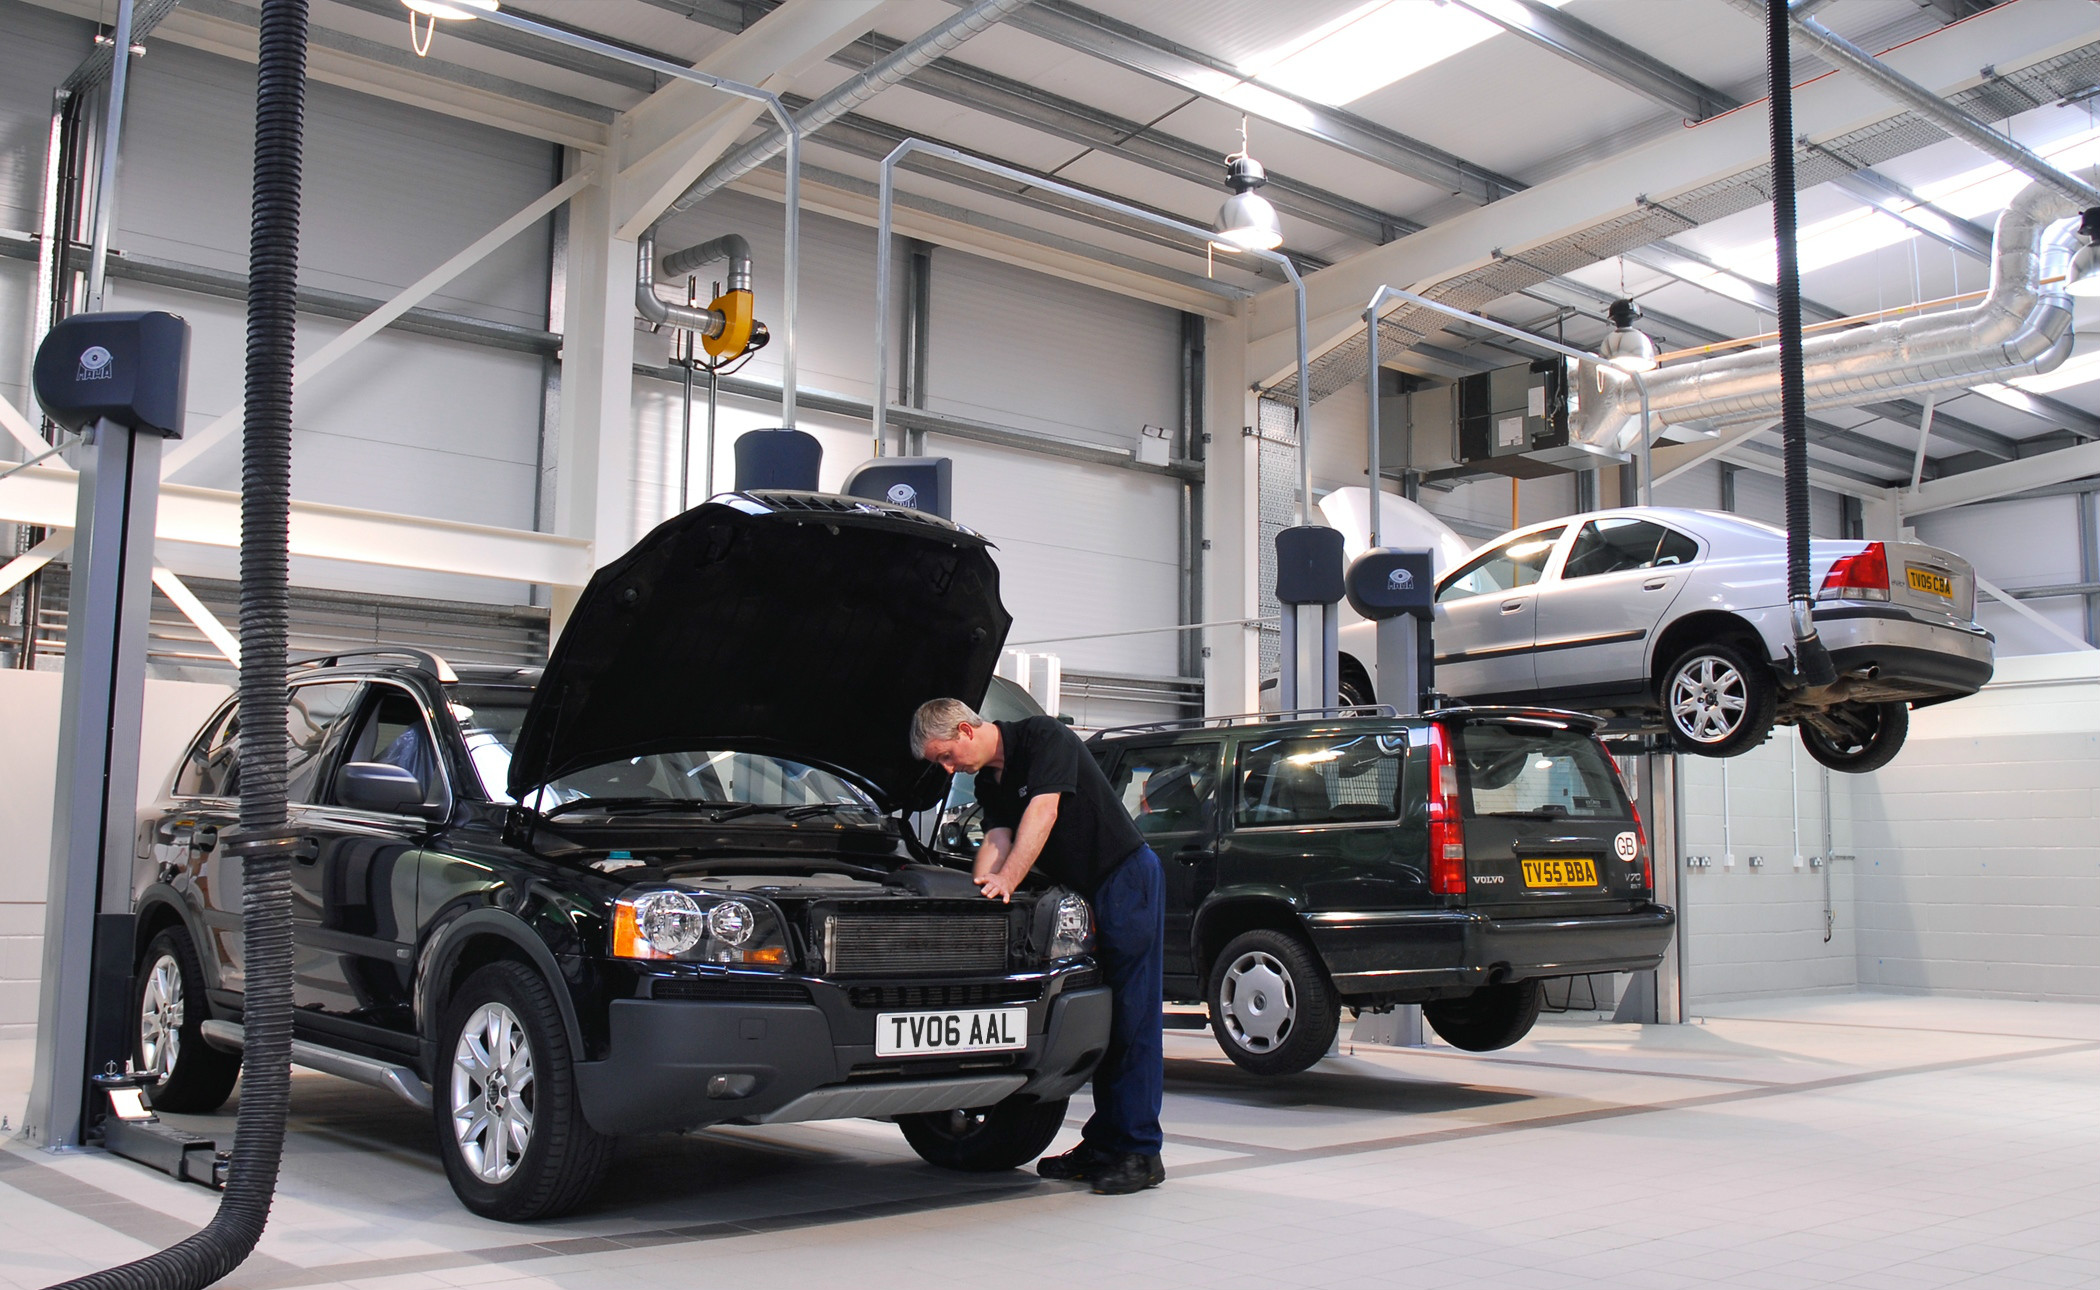 Franchised dealers often have the latest equipment and knowledge of relatively new cars